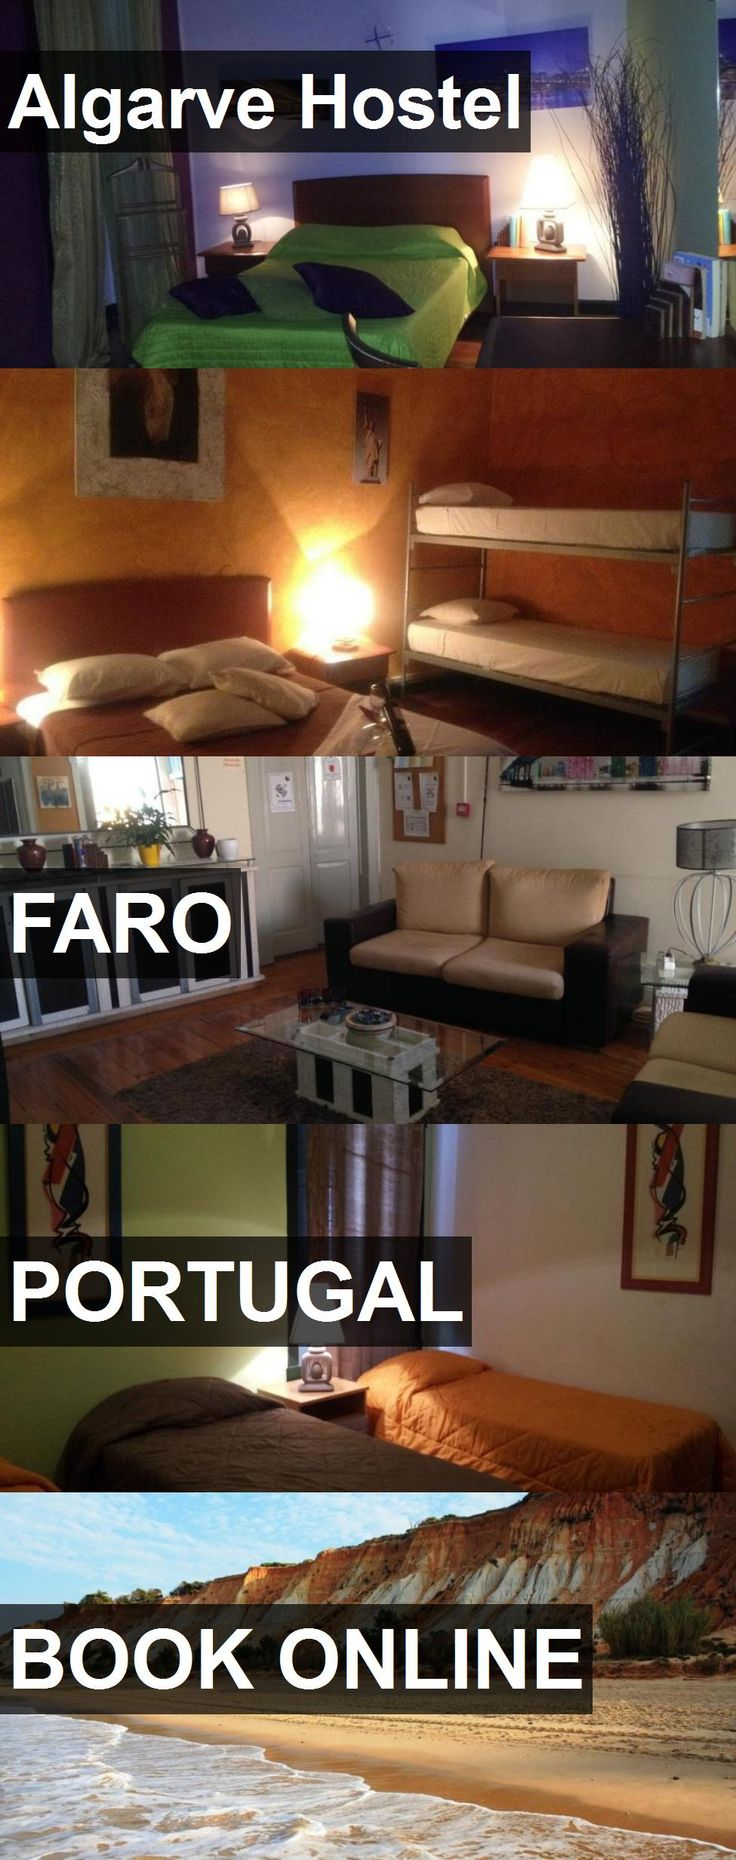 Hotel Algarve Hostel in FARO, Portugal. For more information, photos, reviews and best prices please follow the link. #Portugal #FARO #AlgarveHostel #hotel #travel #vacation